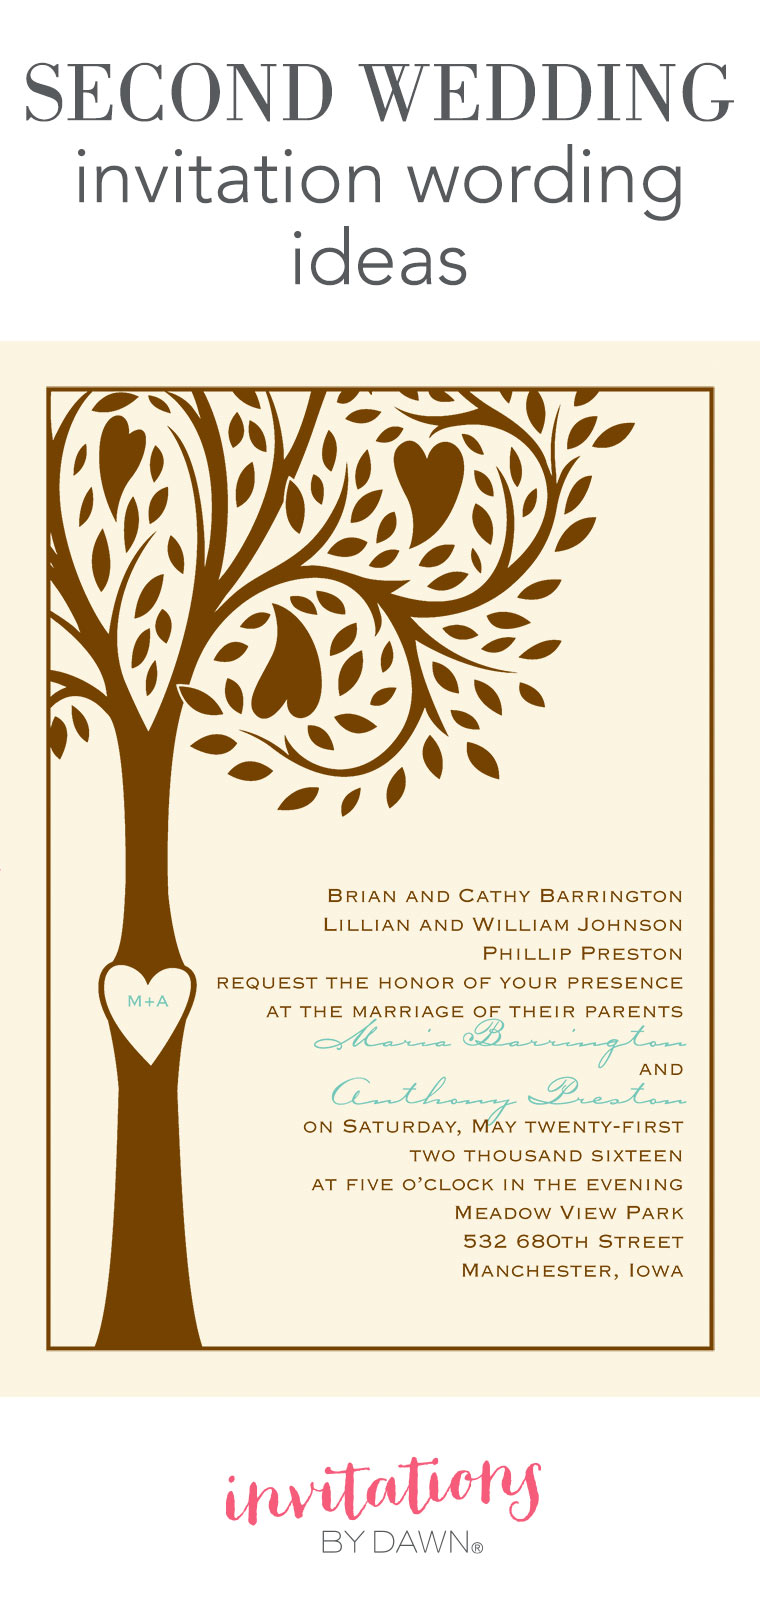 Second Wedding Invitation Wording | Invitations by Dawn